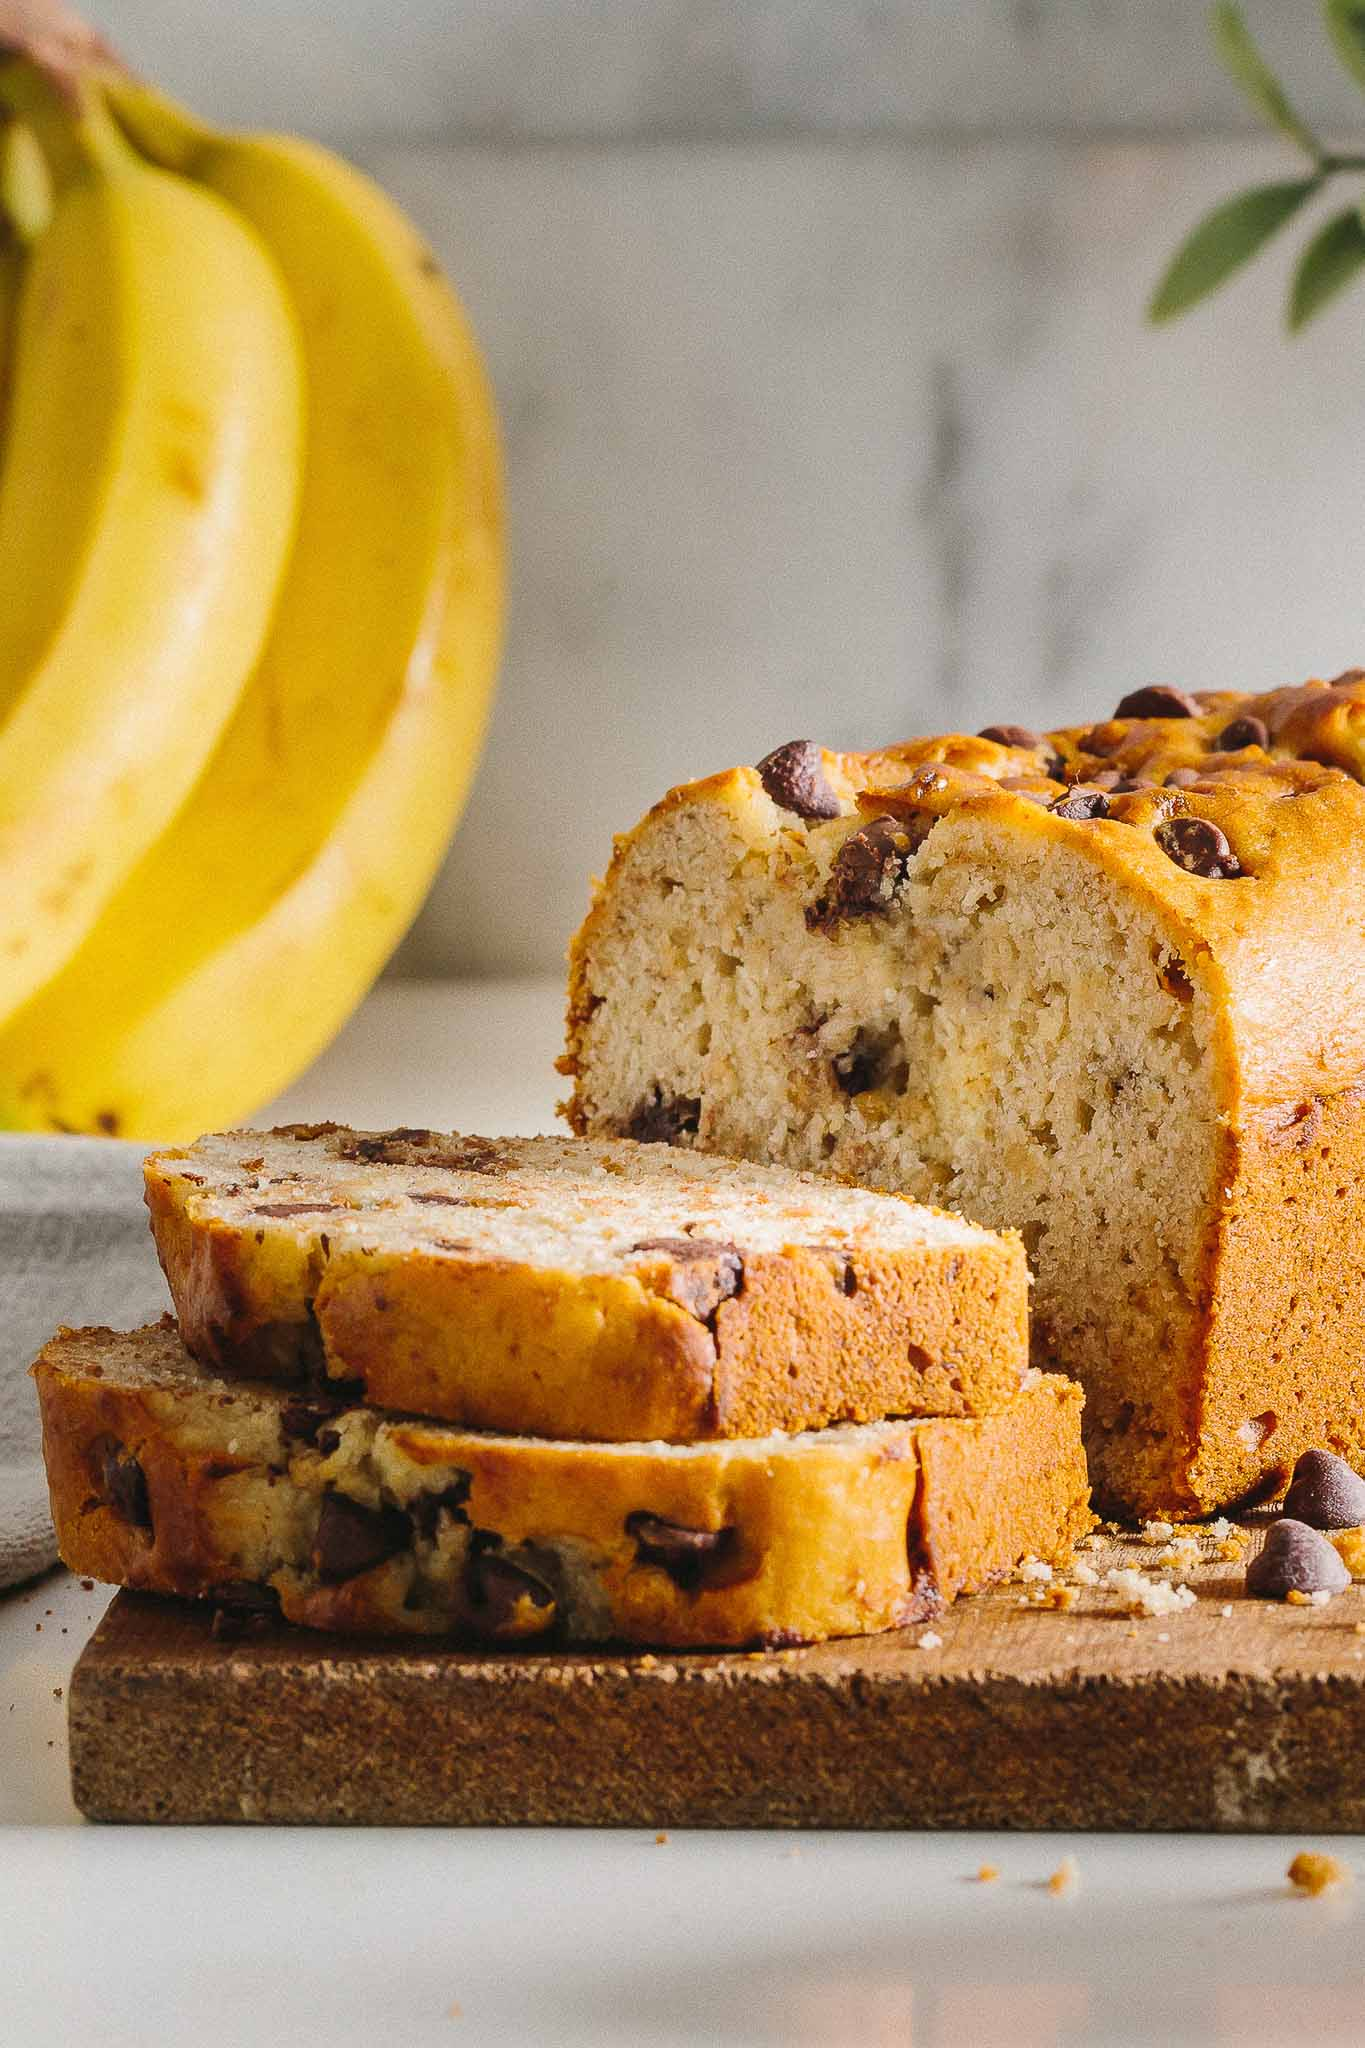 Gluten-Free Banana Bread: This gluten-free banana bread is moist, delicious and perfect for an easy snack or breakfast on the go.